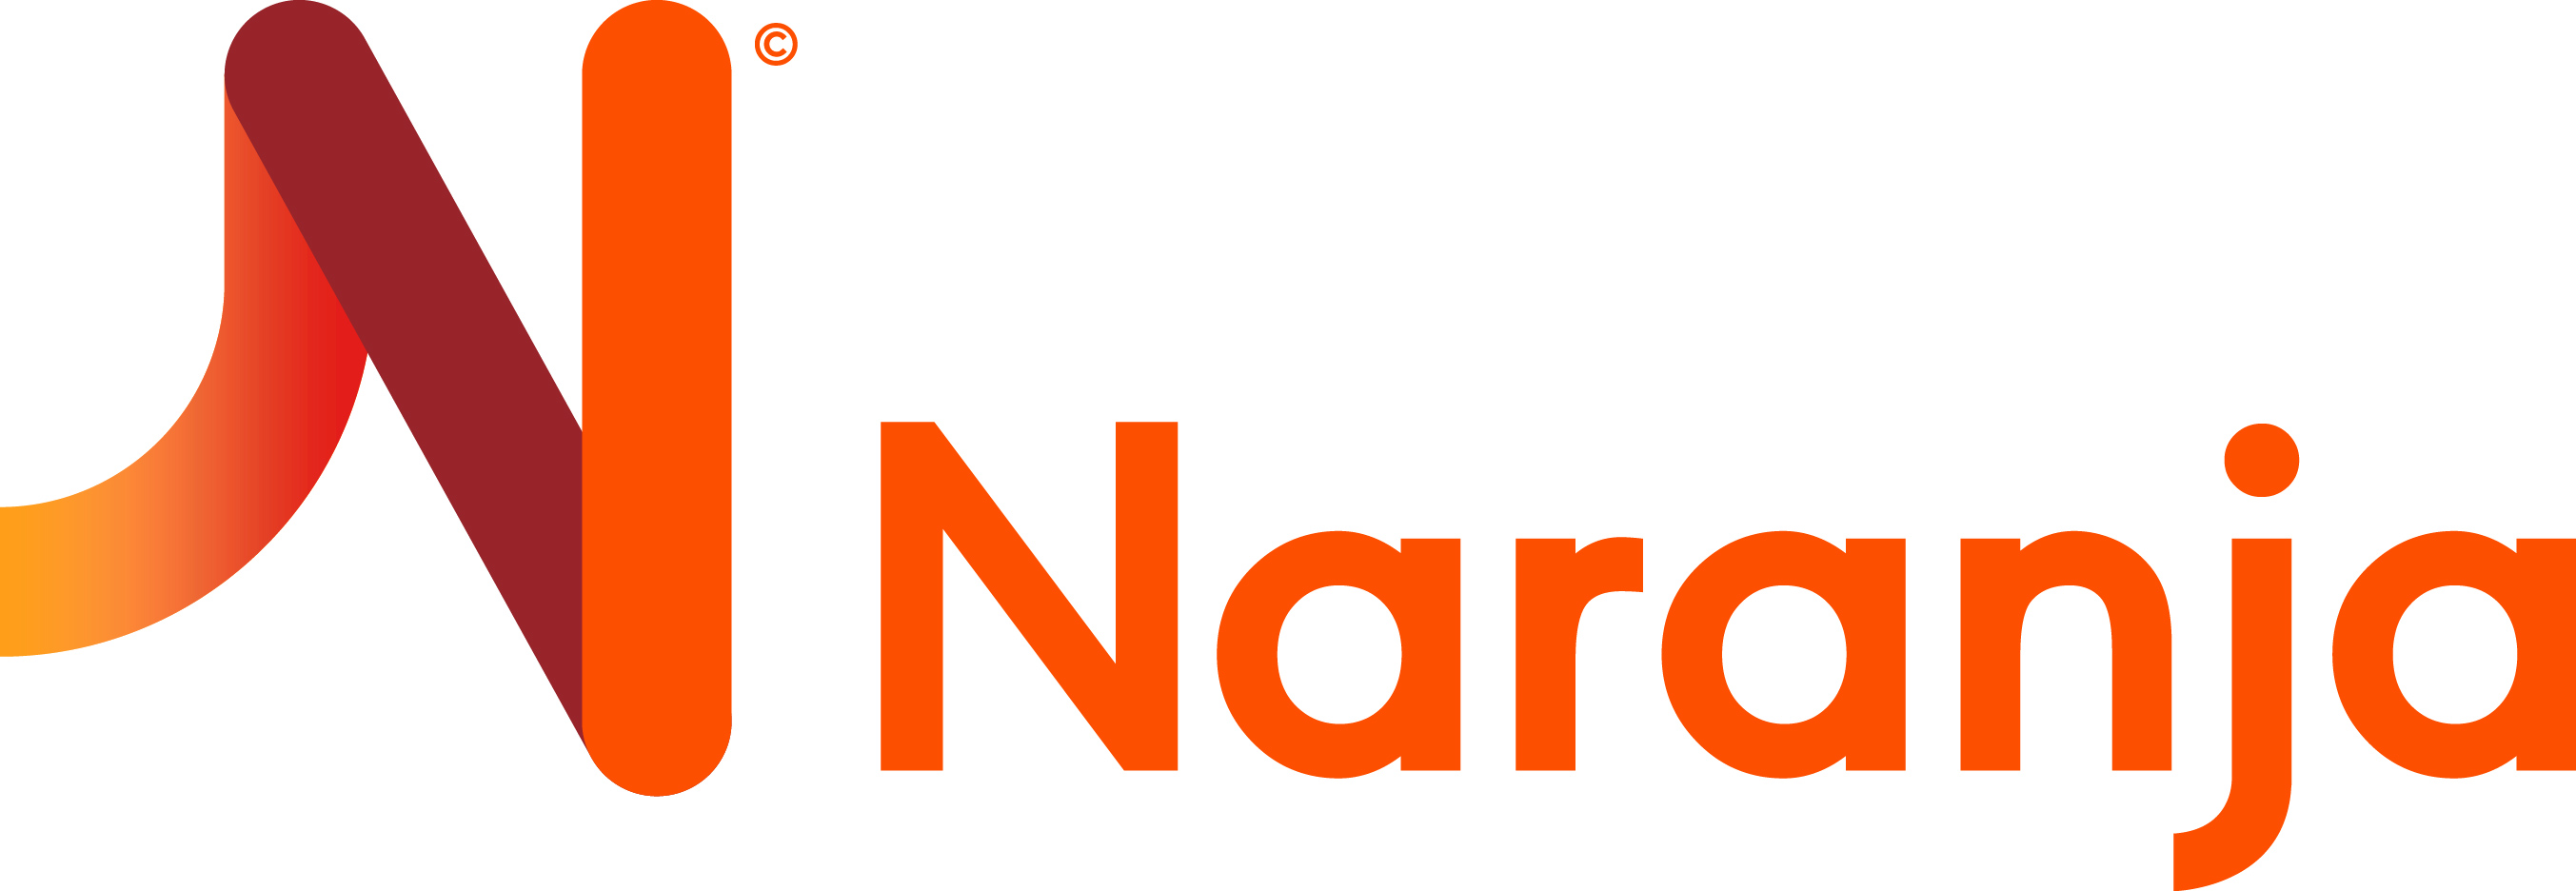 Image result for naranja logo